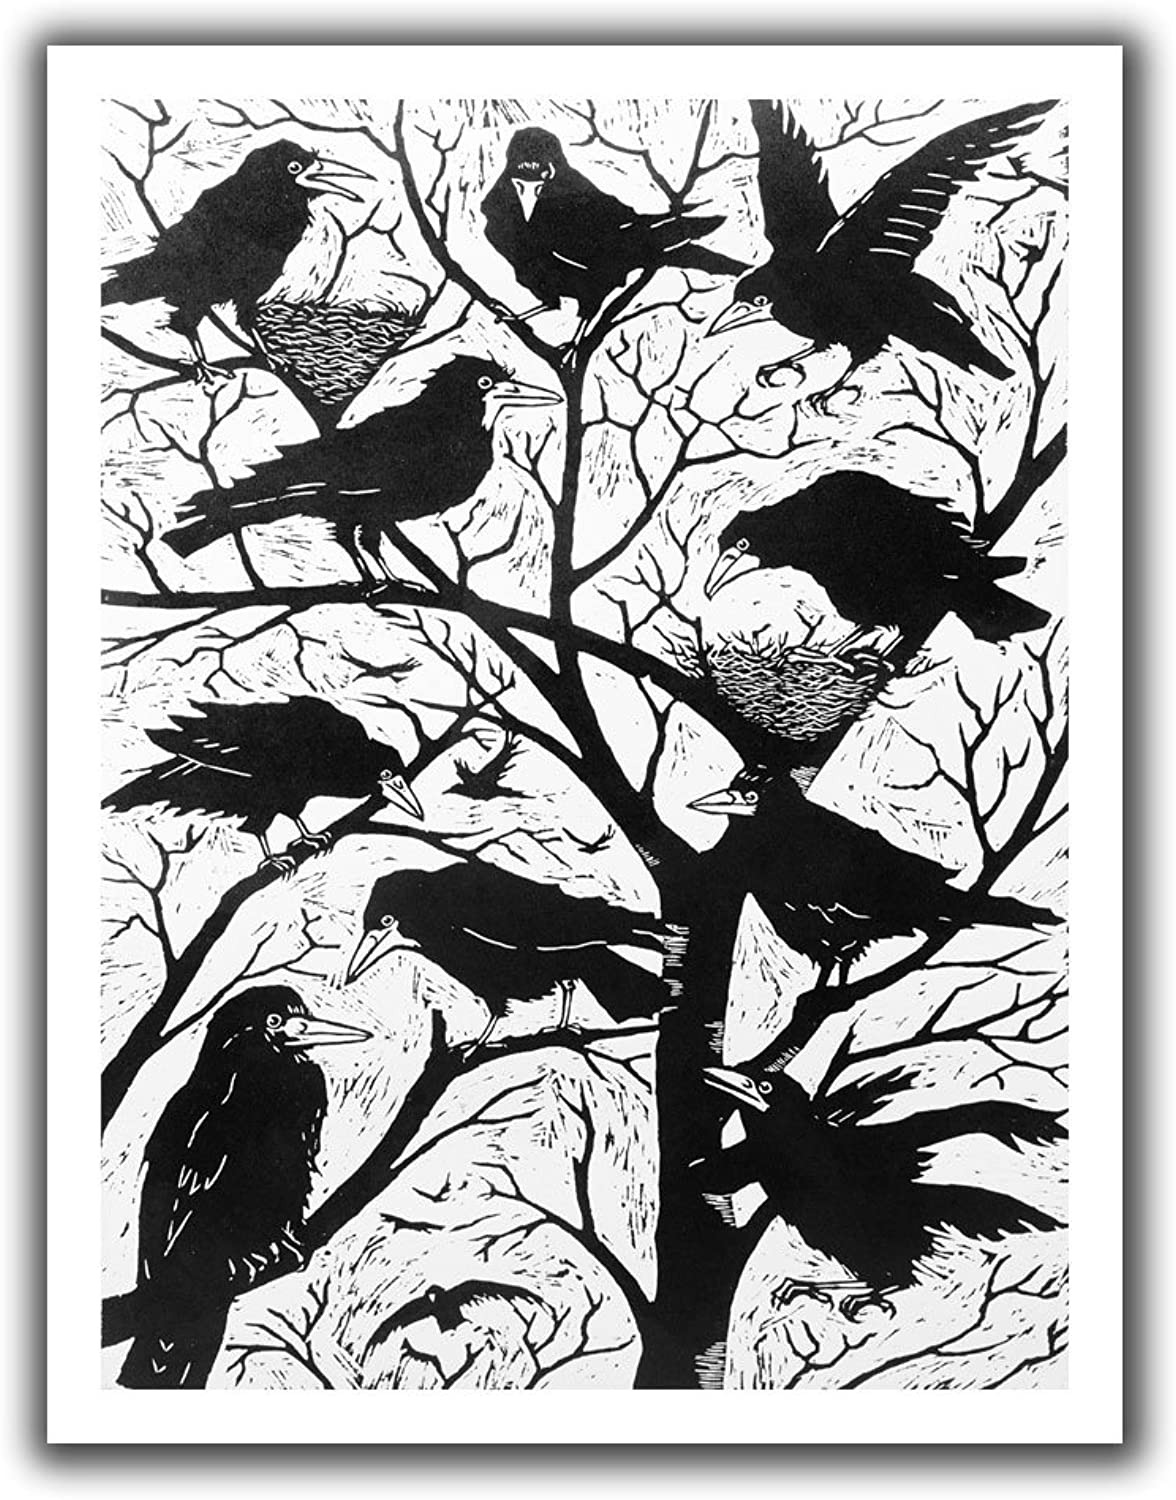 Art Wall Nat Morley Rooks Unwrapped Flat Canvas Artwork, 18 by 22-Inch